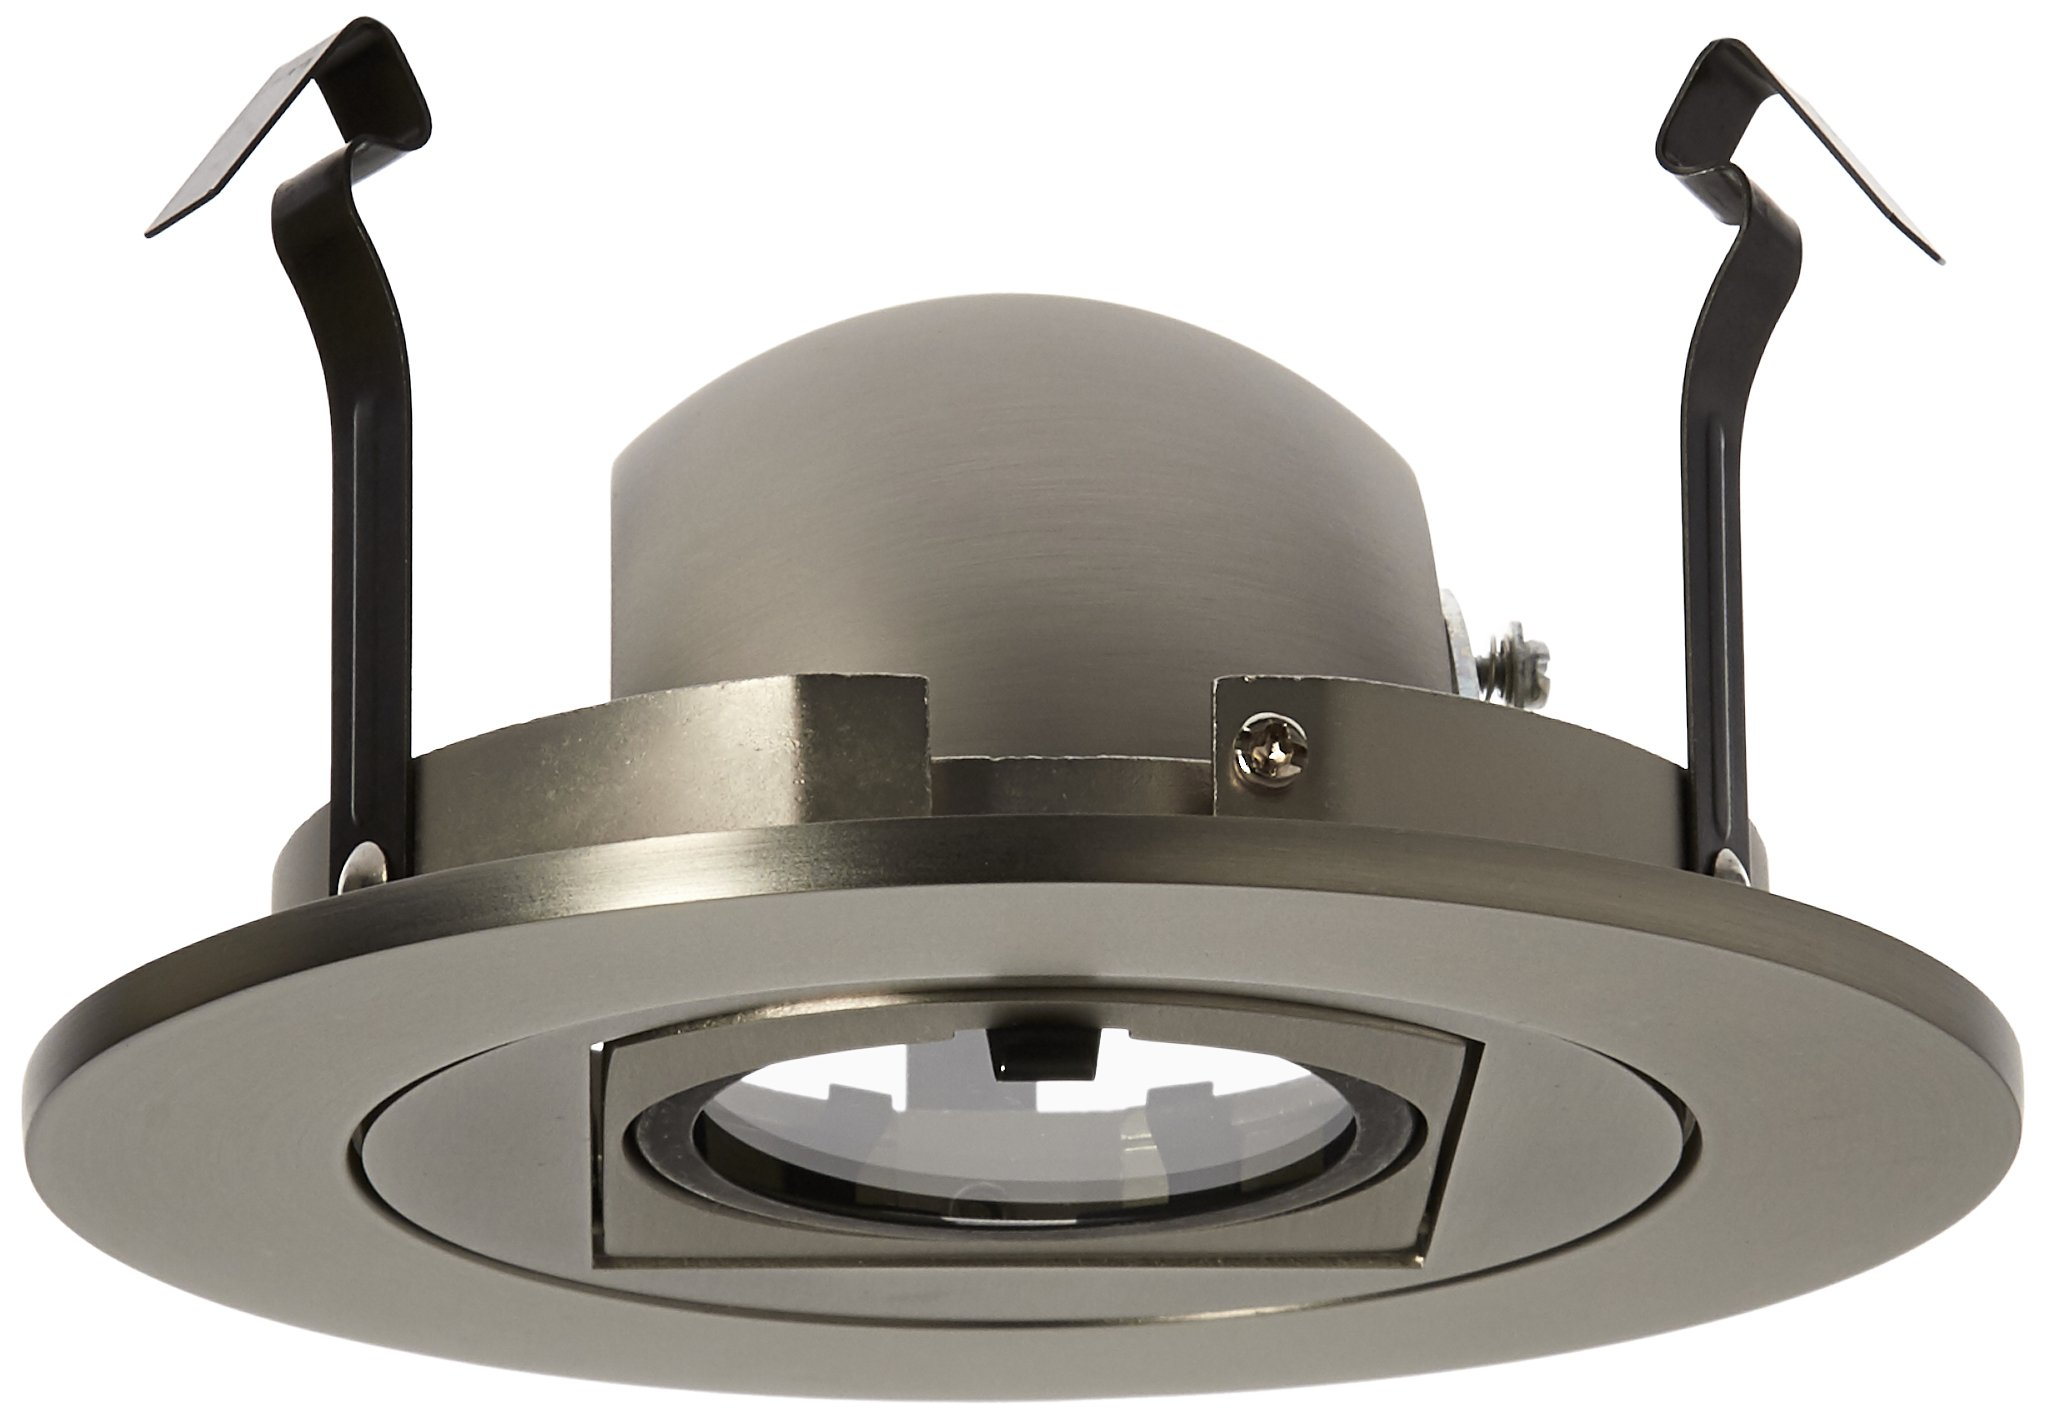 WAC Lighting HR-D425-BN Recessed Low Voltage Trim Adjust Spot by WAC Lighting (Image #1)